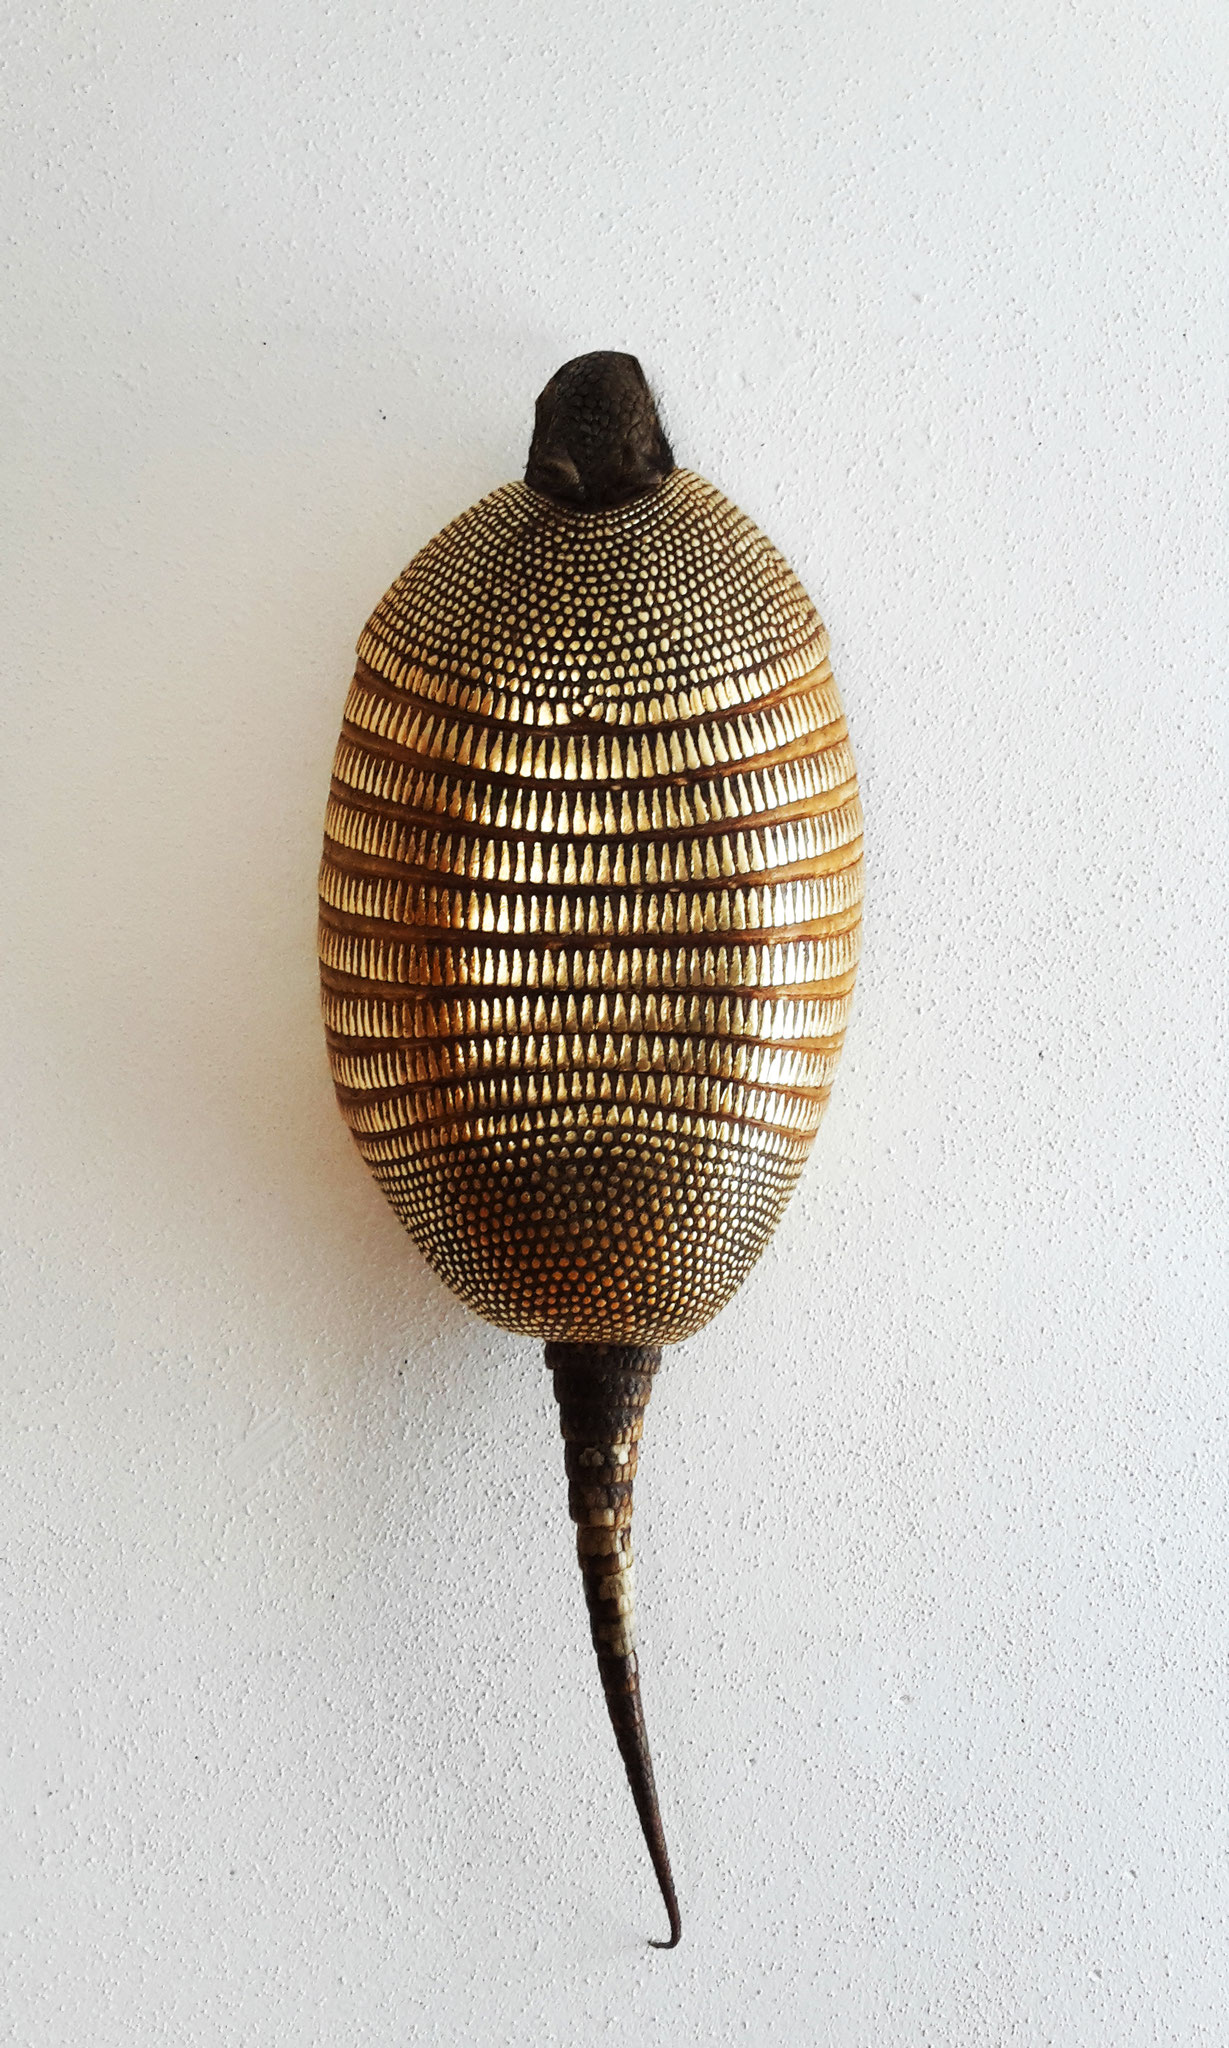 Armadillo Totem, 2018, 22 carat gold-plated armadillo carapace, 74x25x13cm